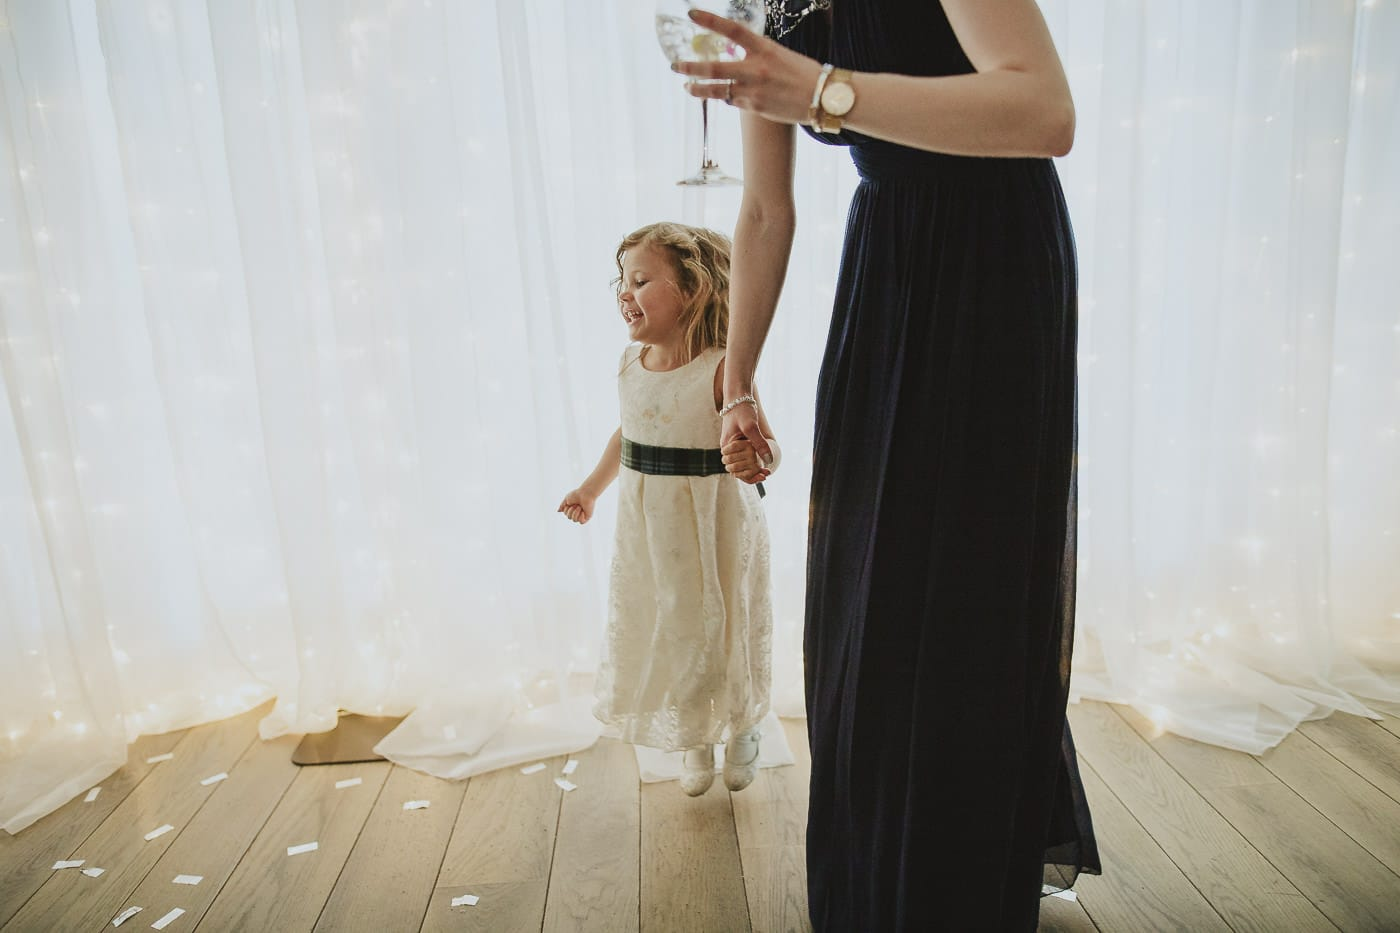 Little bridesmaid dancing after first dance at the inn on the lake wedding reception